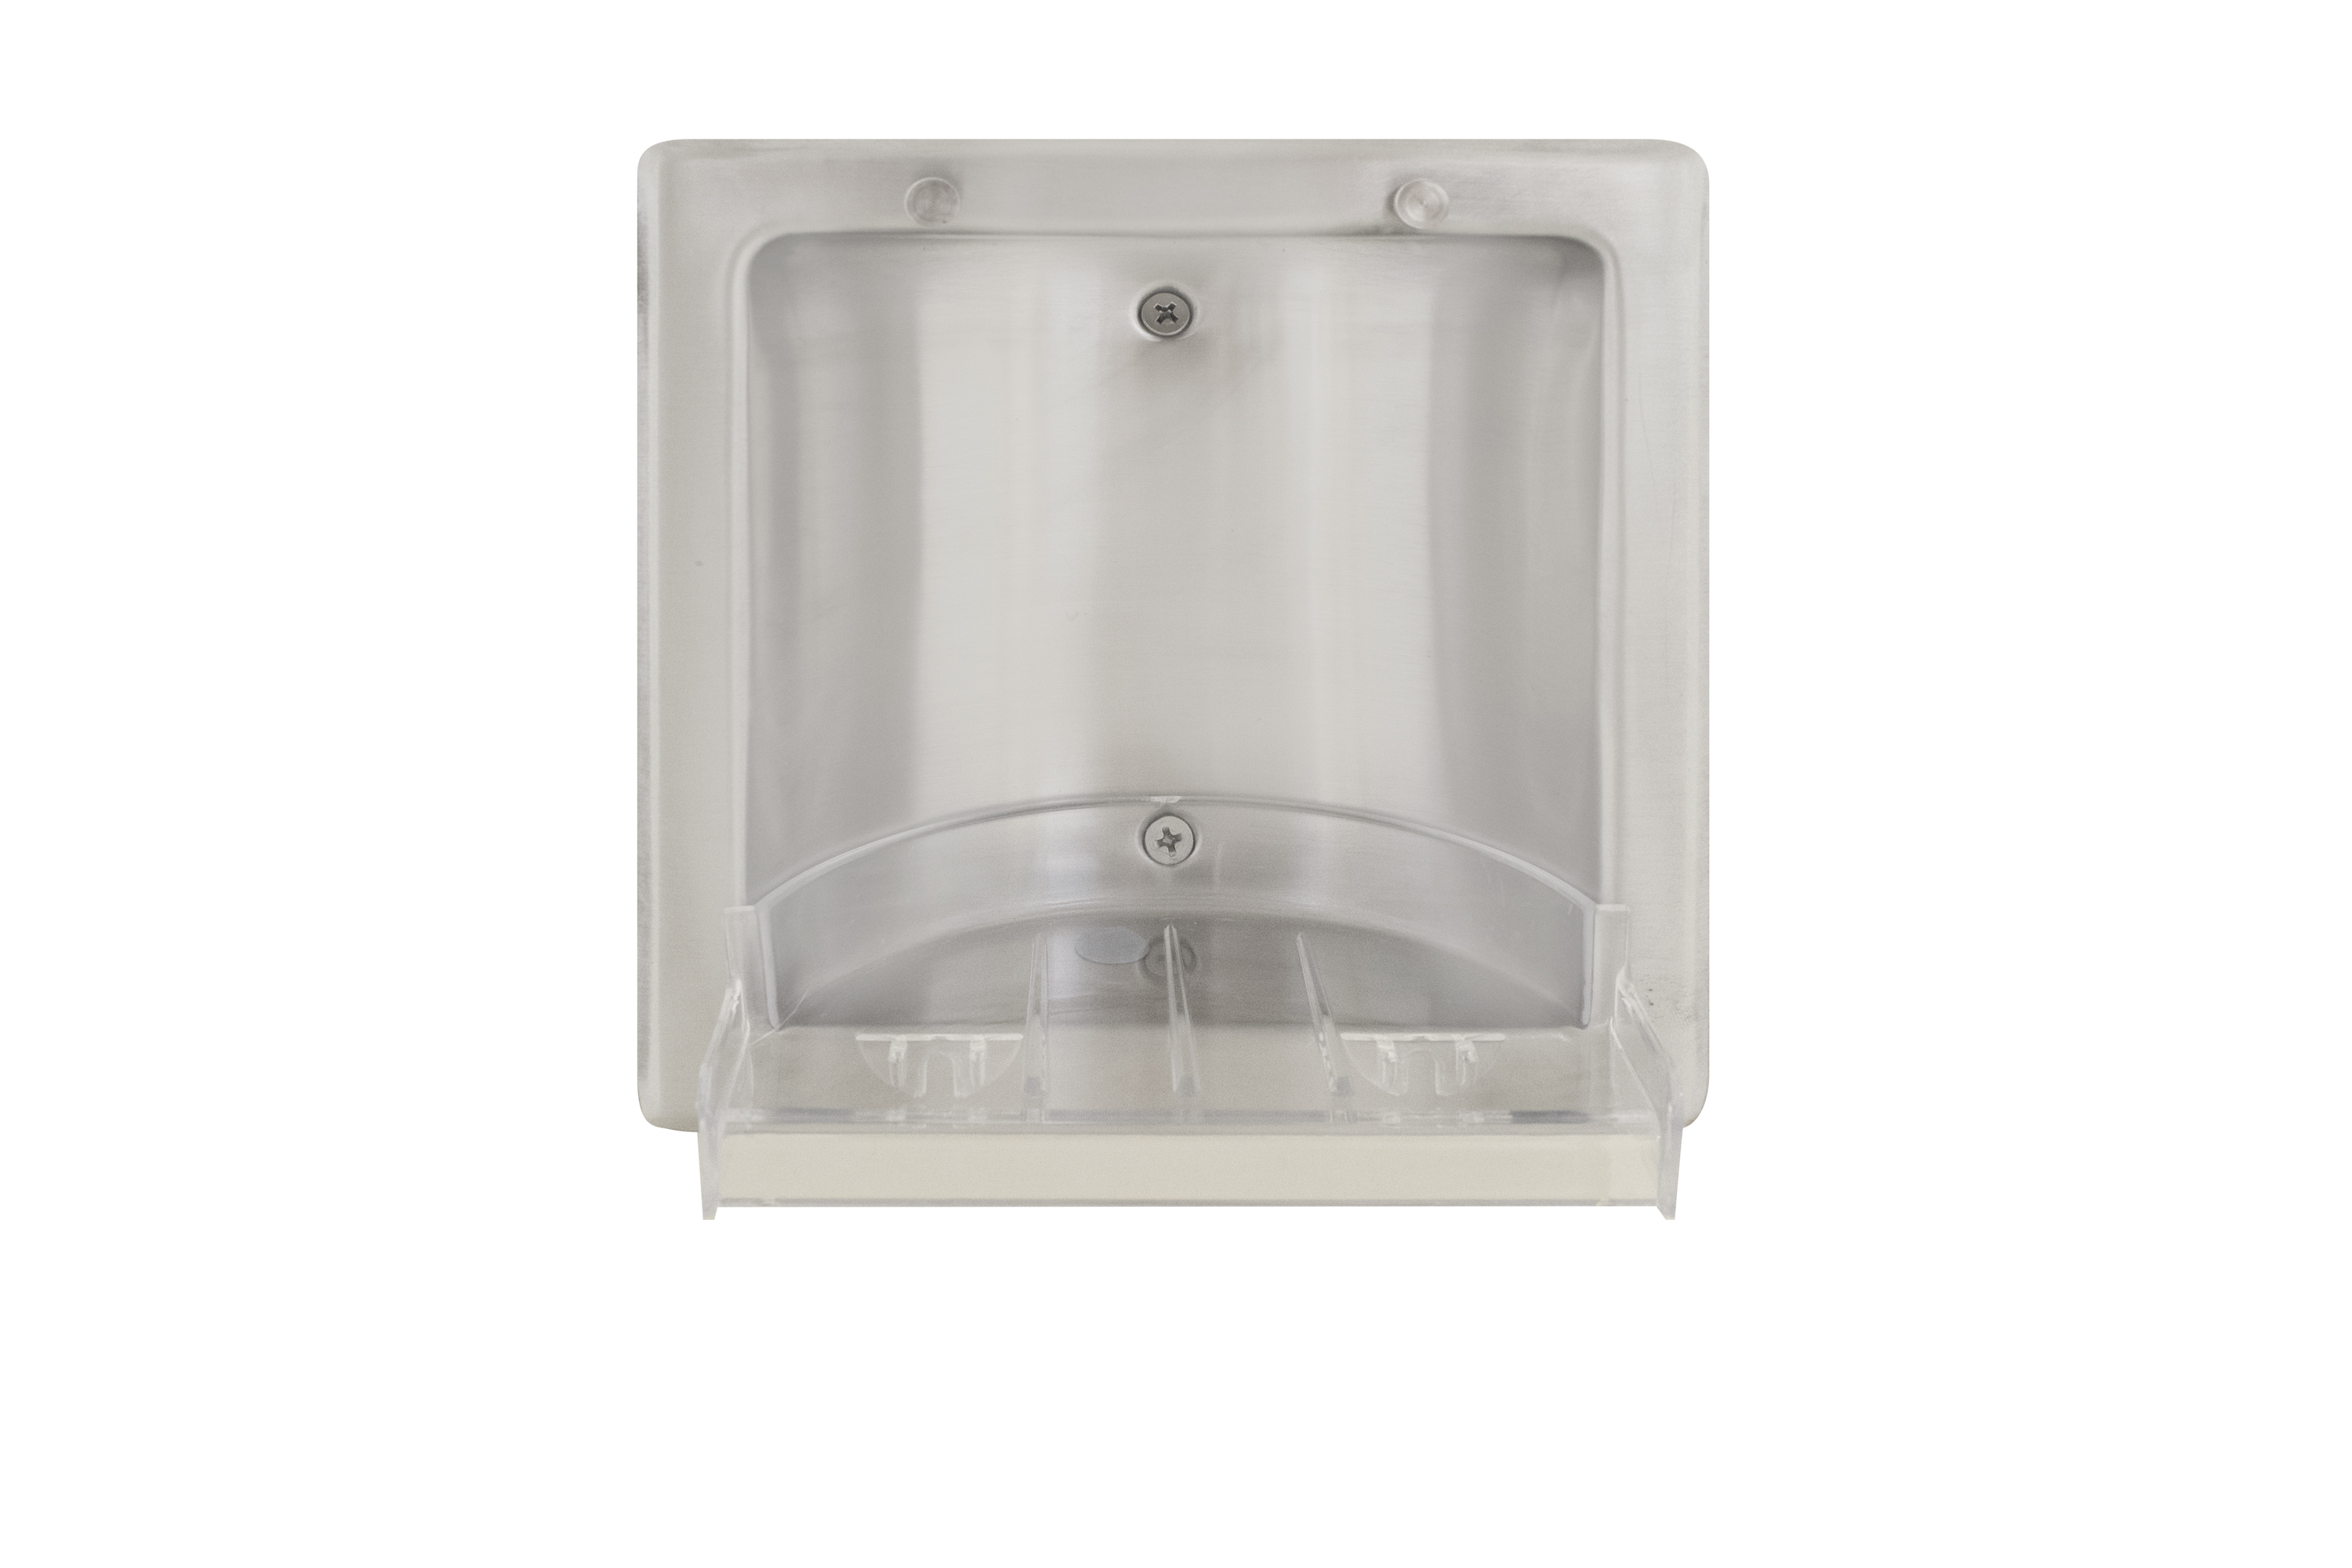 specialty bradley corporation dish accessories dishes mounted steel stainless hospitality surface shower soap